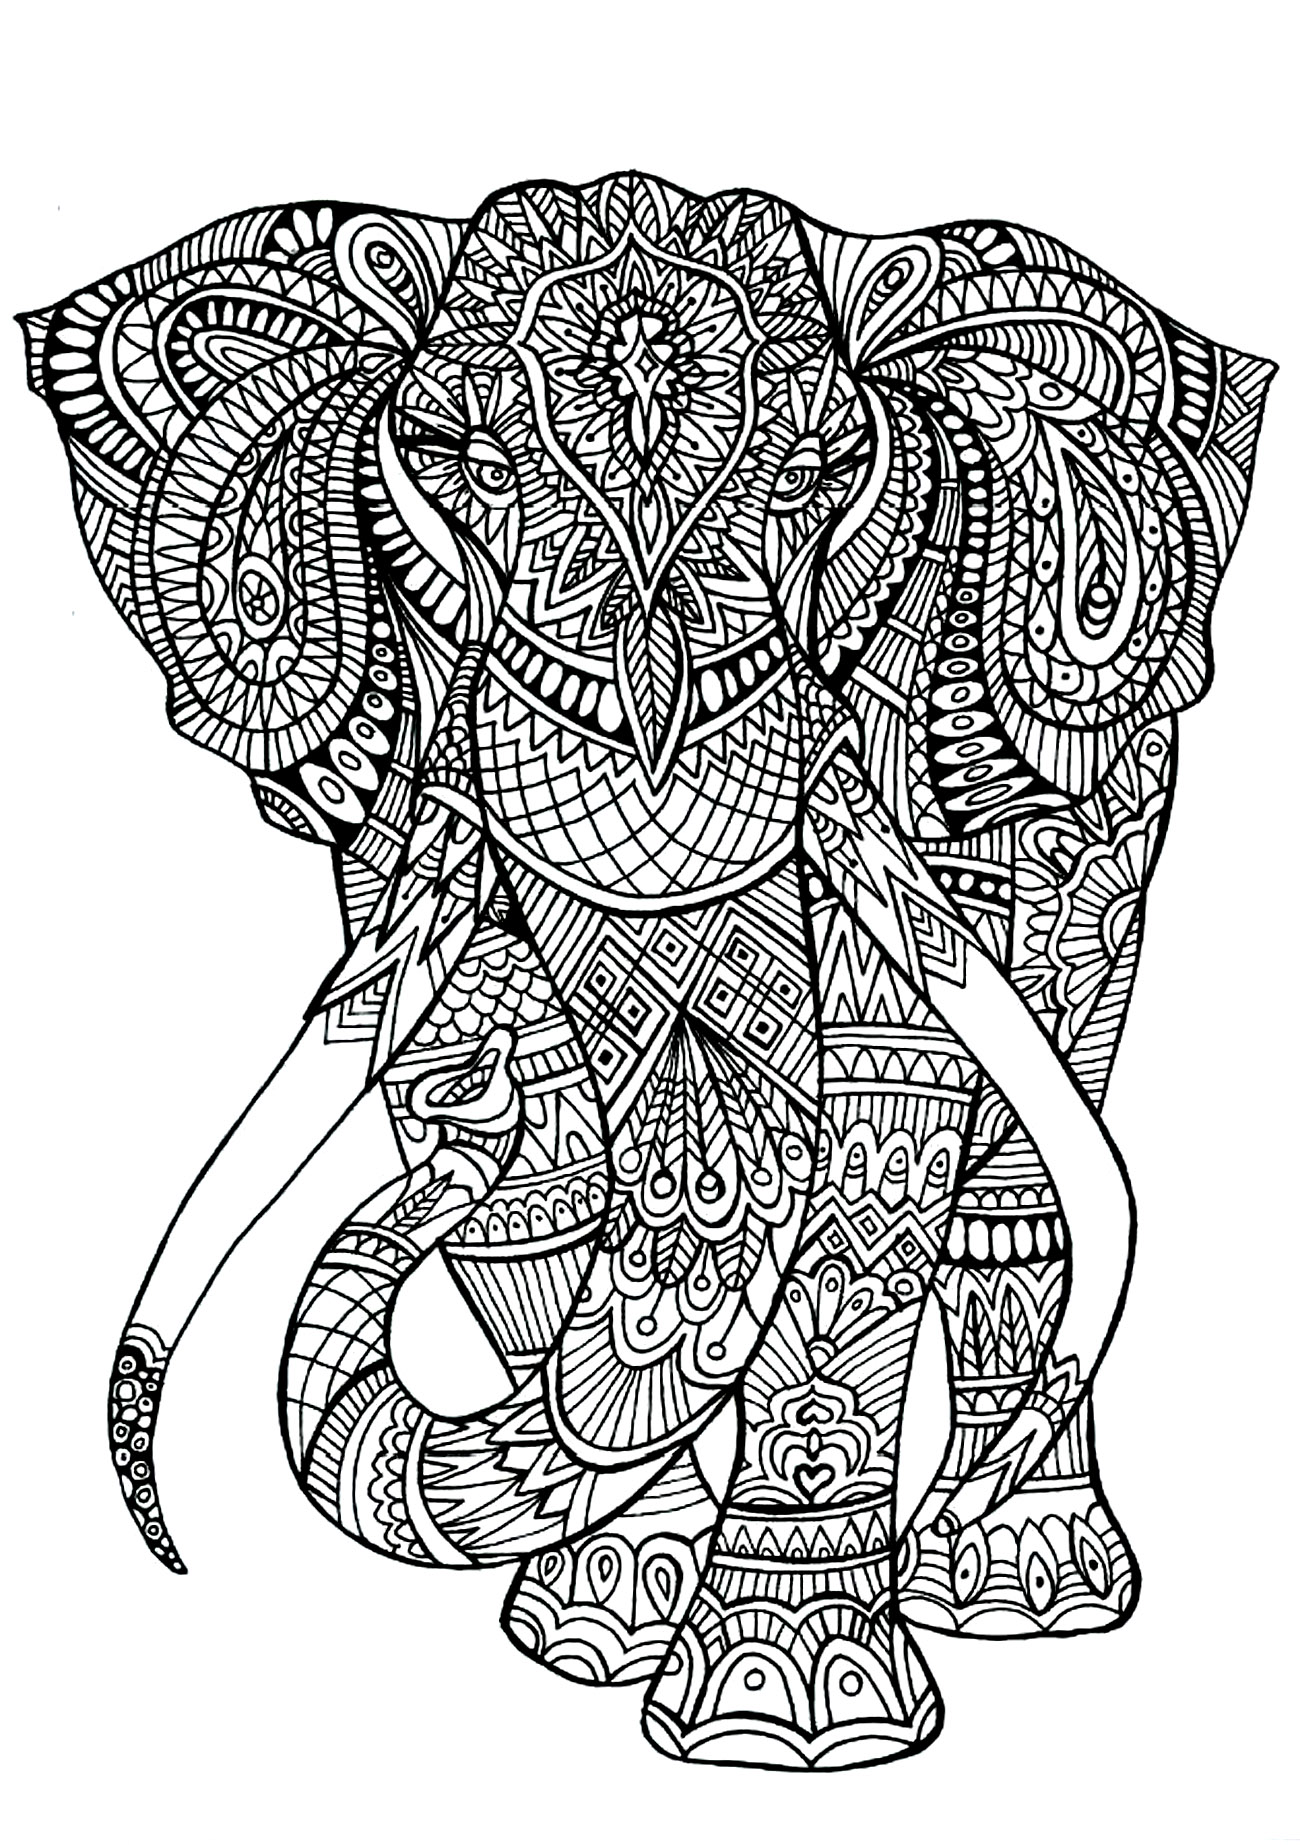 Coloring pages patterns - A Big Elephant Full Of Details From The Gallery Insects